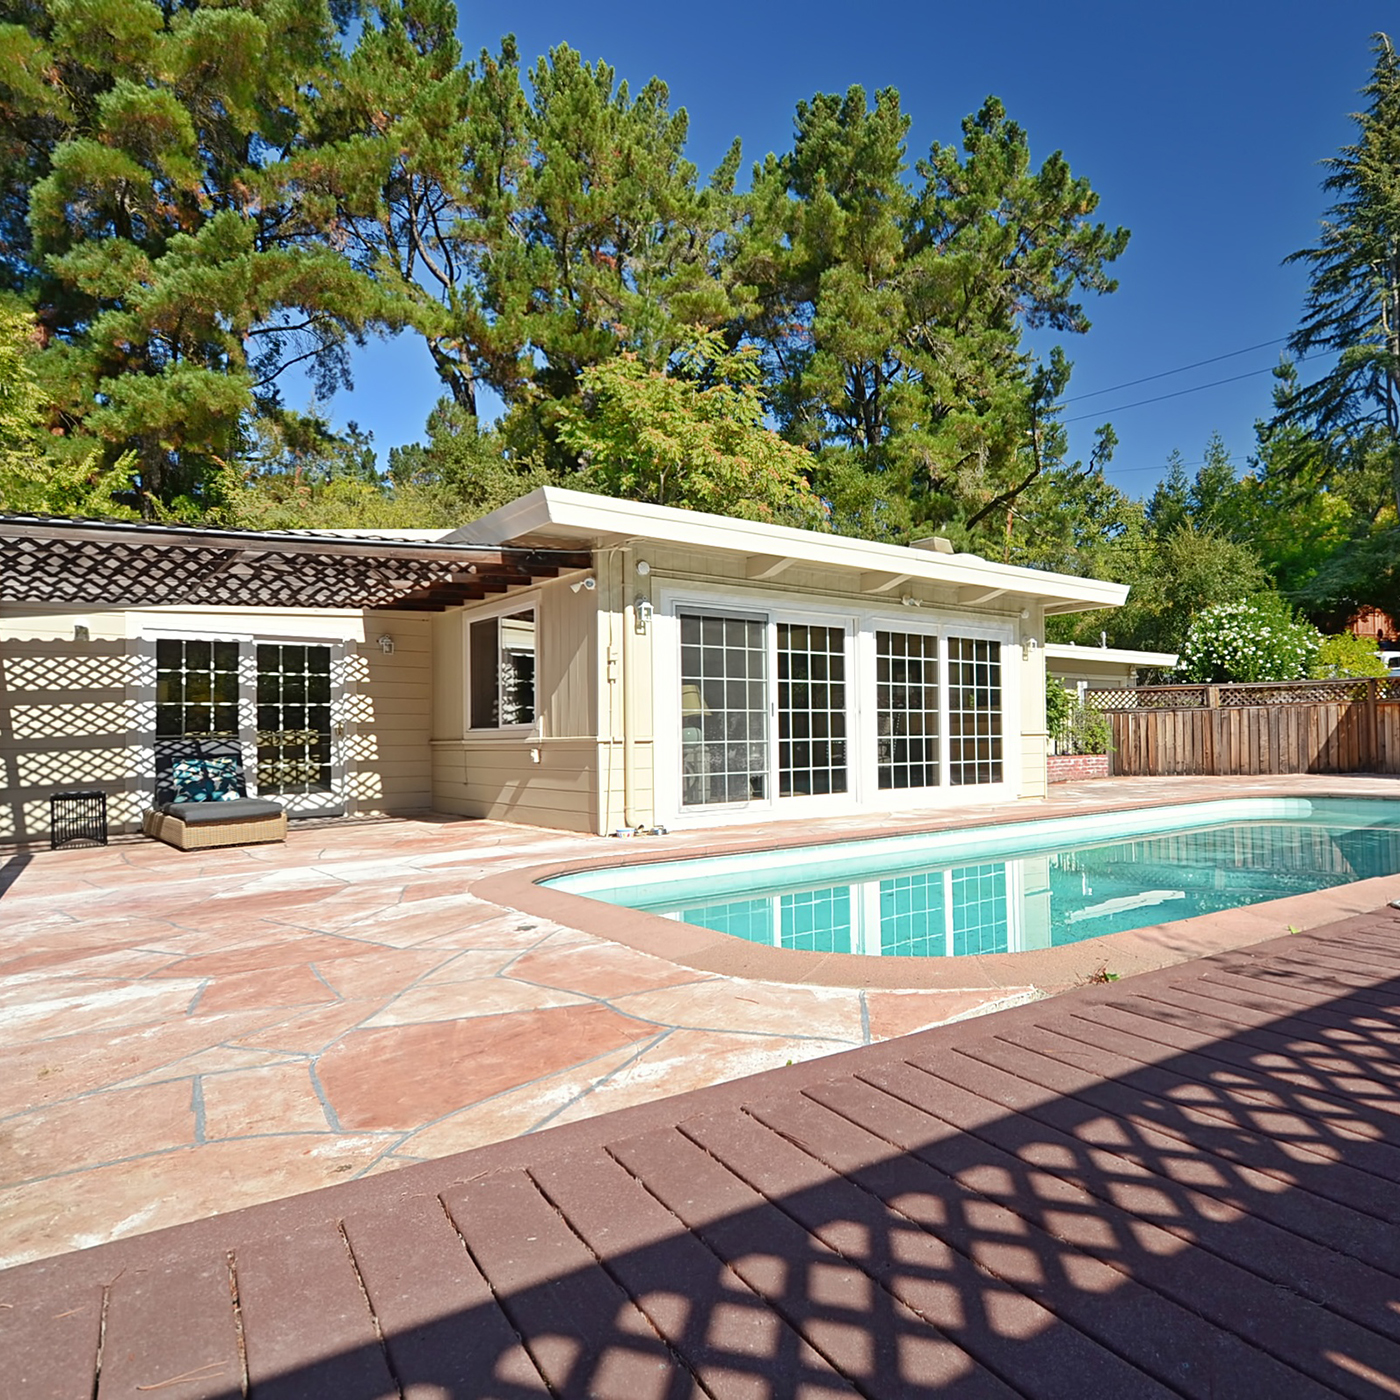 Lafayette Real Estate, Homes & Houses for Sale, Contra Costa / Tri-Valley CA | PARAGON Real Estate Group